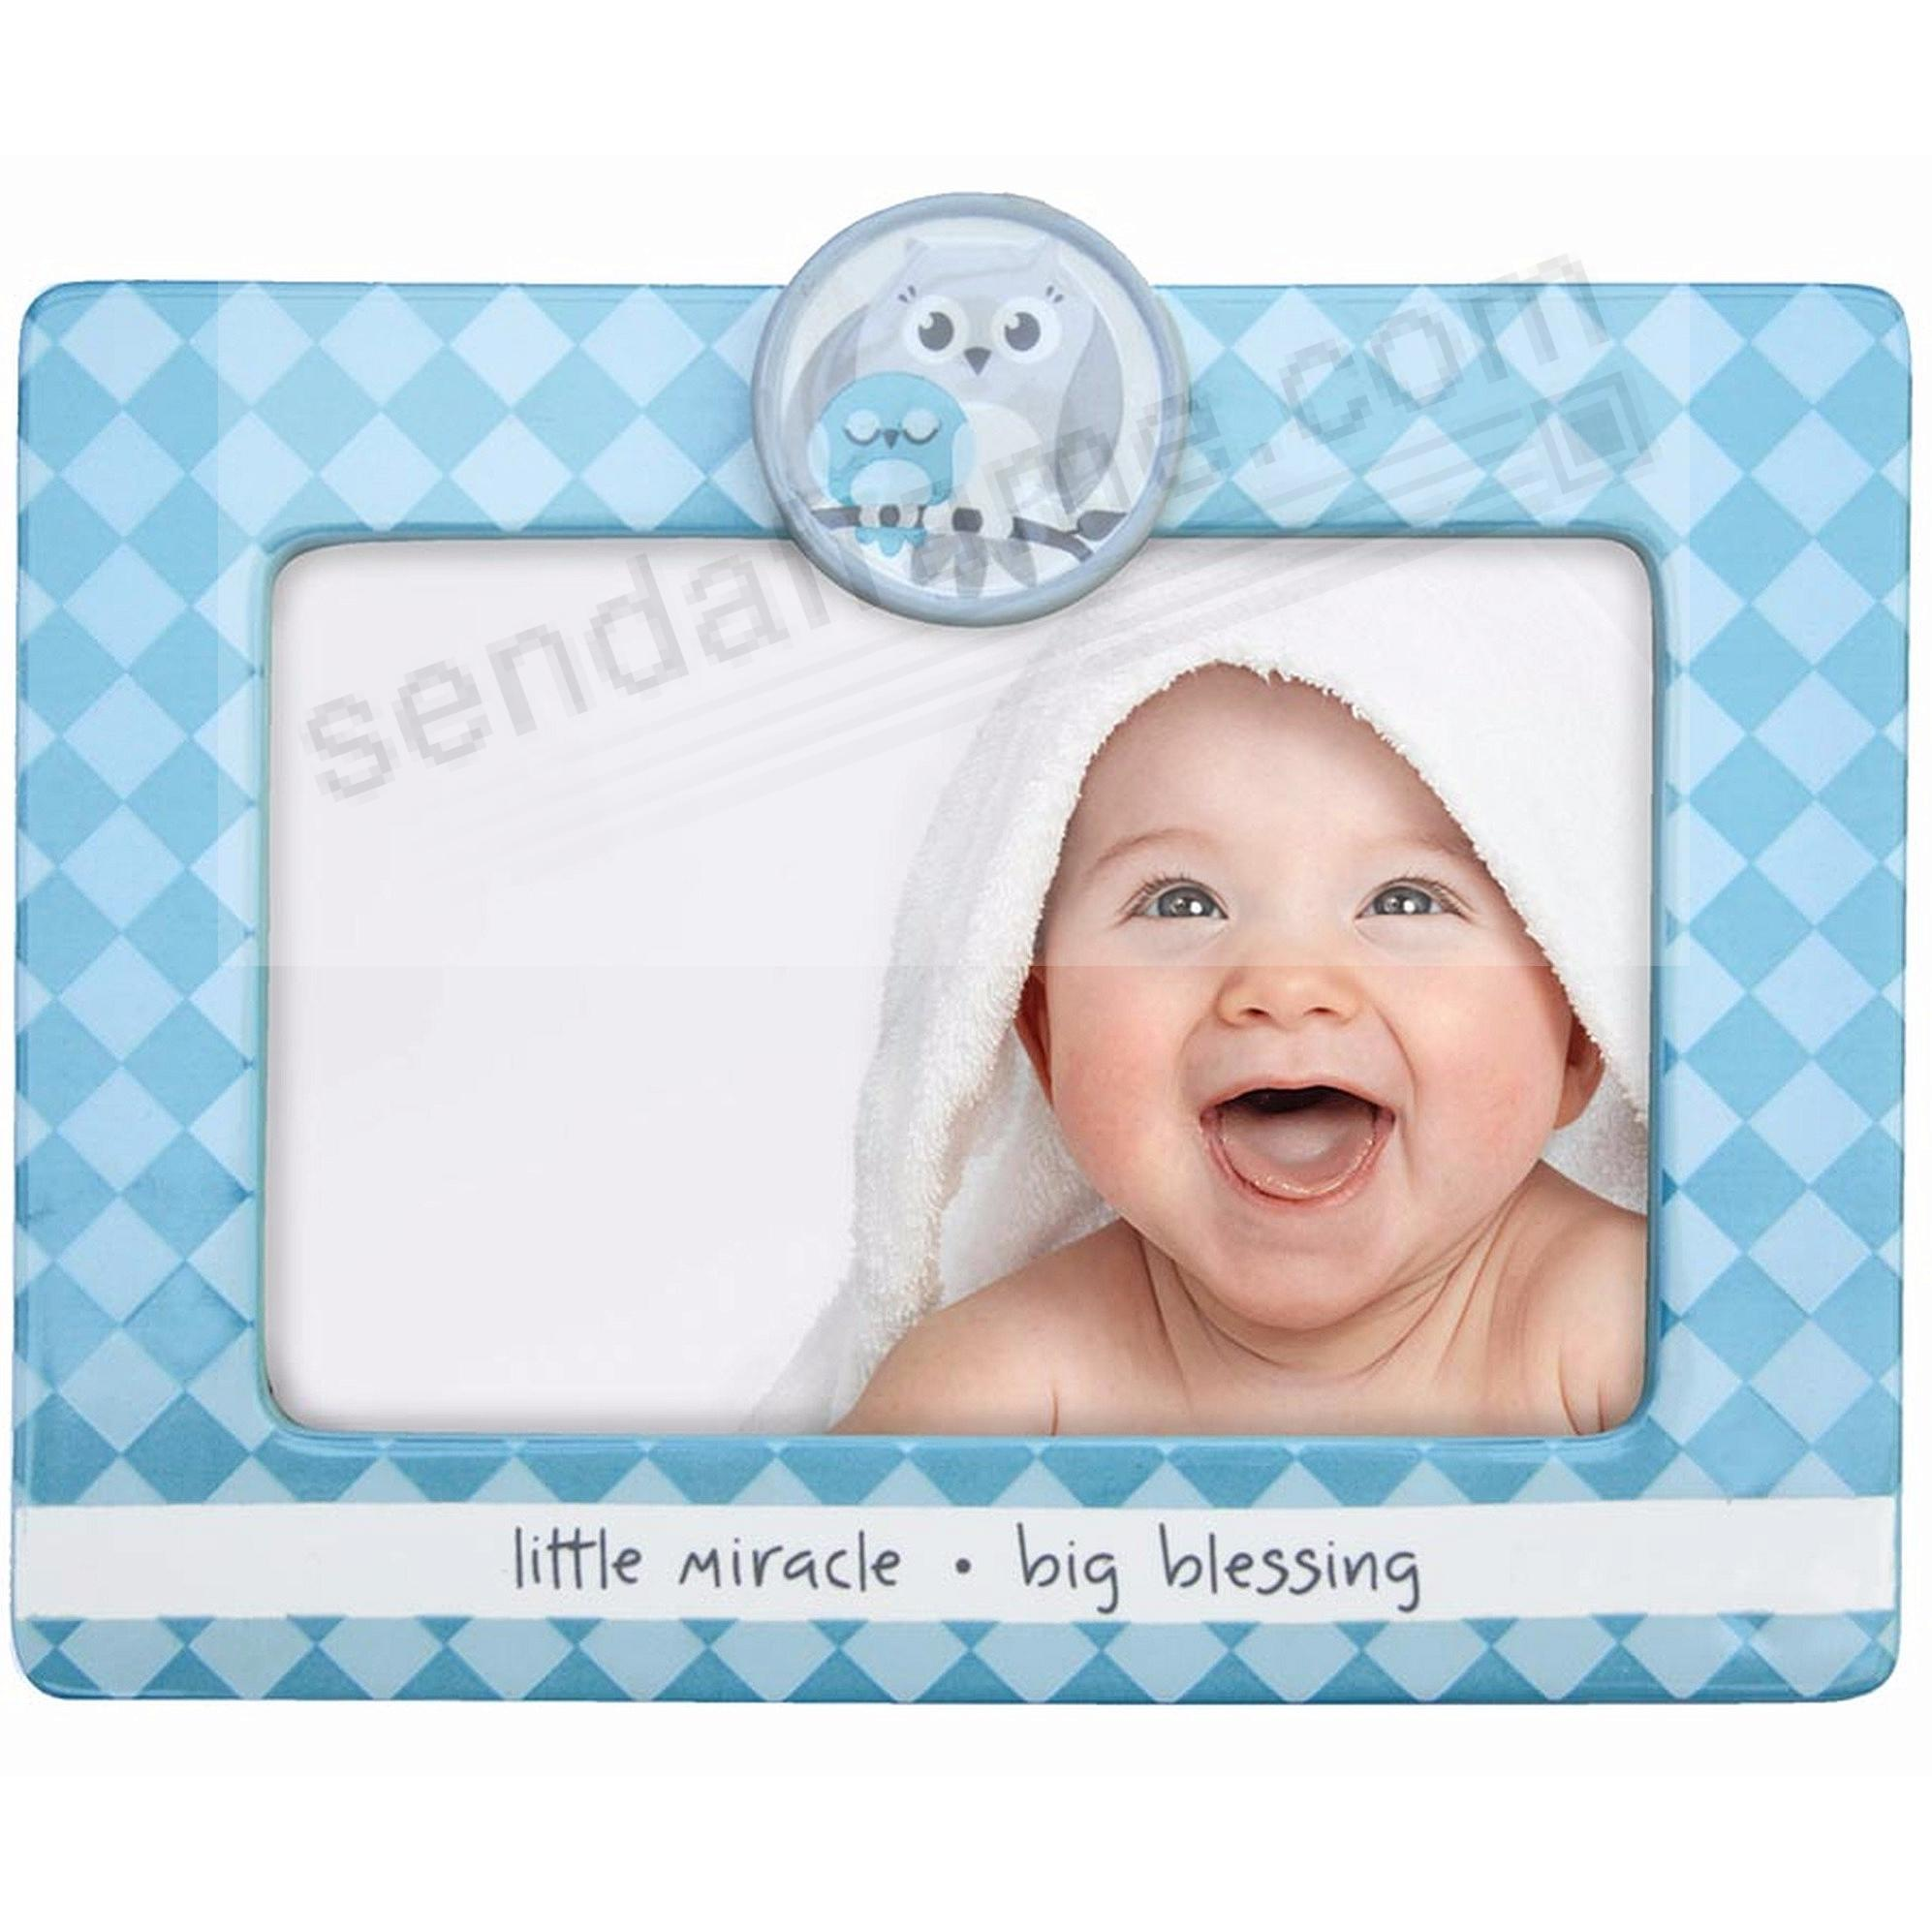 adorable little miracle big blessing blue baby frame